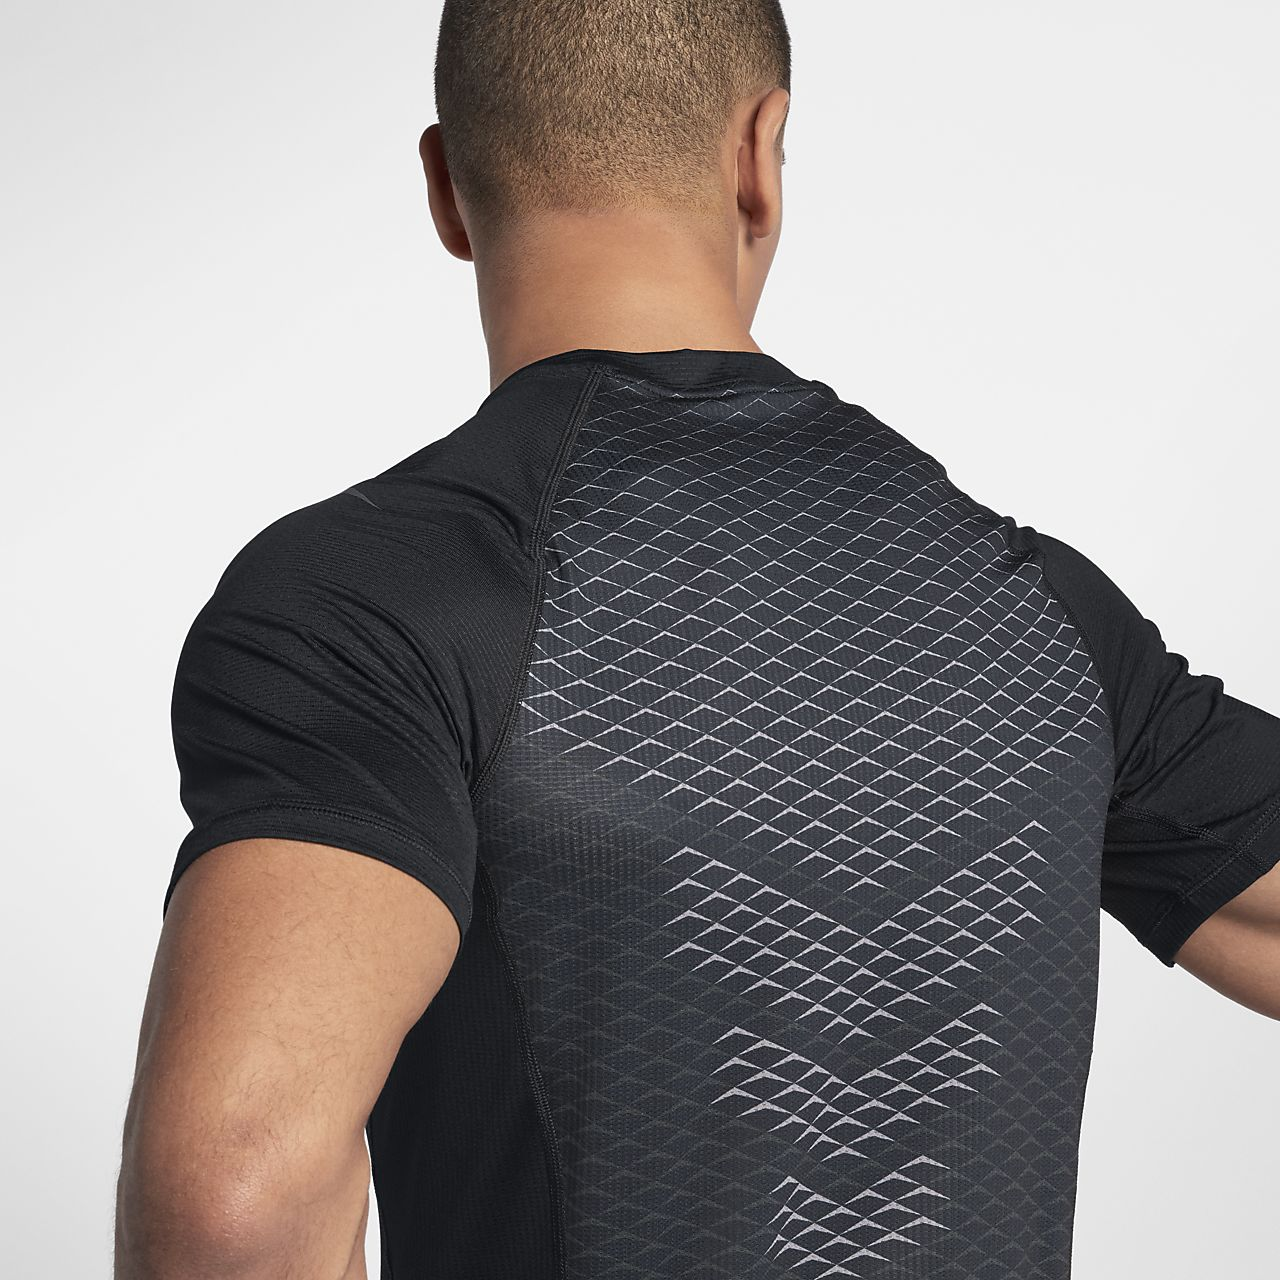 c81060e4 Nike Pro HyperCool Men's Short-Sleeve Training Top. Nike.com GB